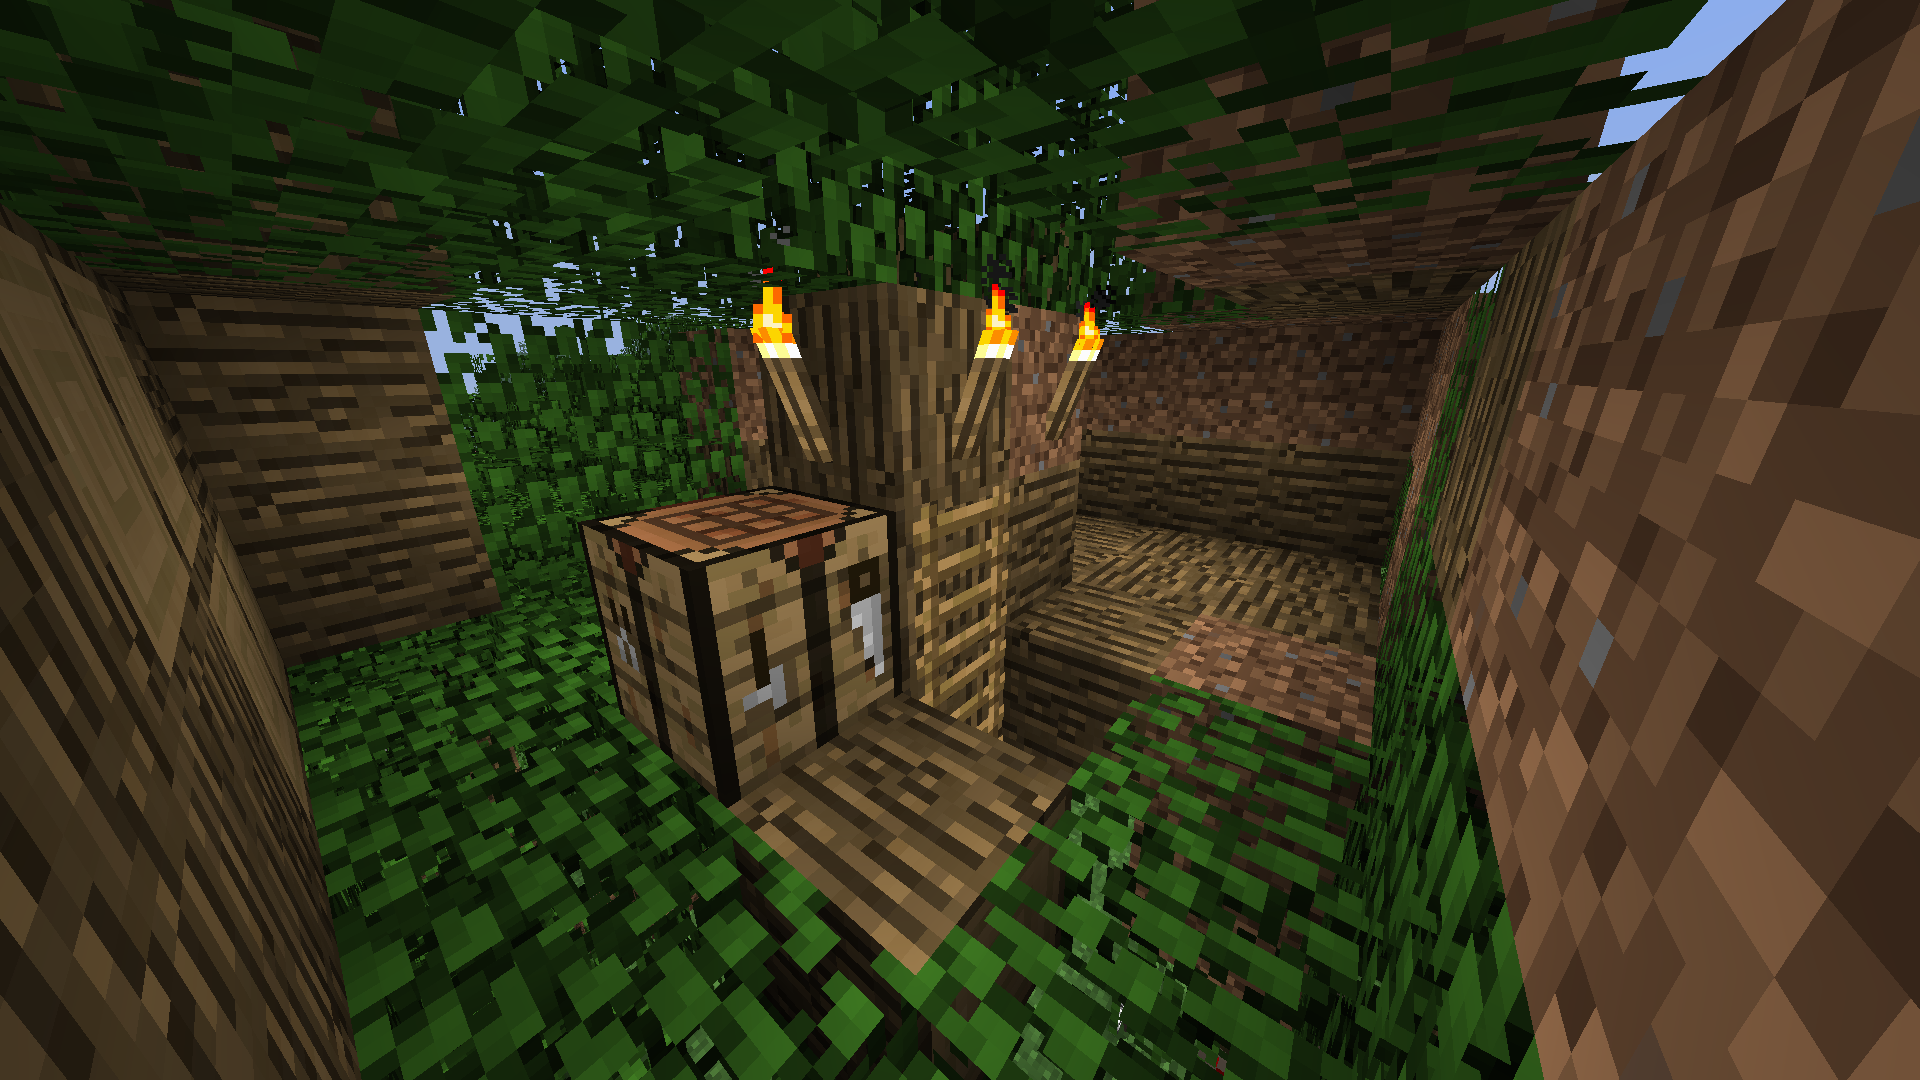 Treehouses in Survival? - Survival Mode - Minecraft Discussion